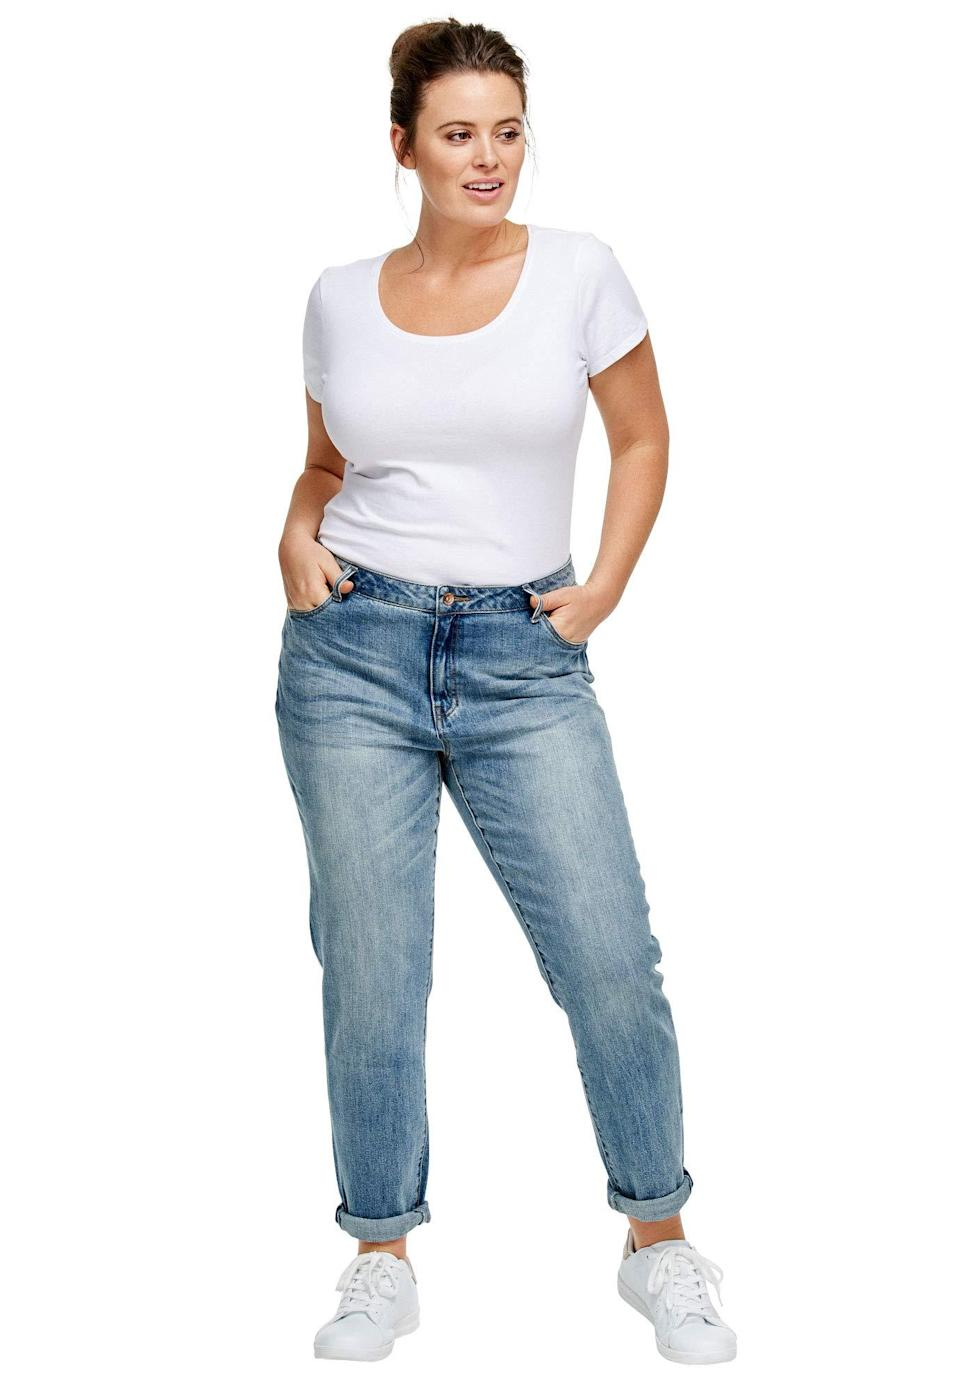 """<br><br><strong>Ellos</strong> Plus Size Boyfriend Jeans, $, available at <a href=""""https://amzn.to/3skyDm5"""" rel=""""nofollow noopener"""" target=""""_blank"""" data-ylk=""""slk:Amazon"""" class=""""link rapid-noclick-resp"""">Amazon</a>"""